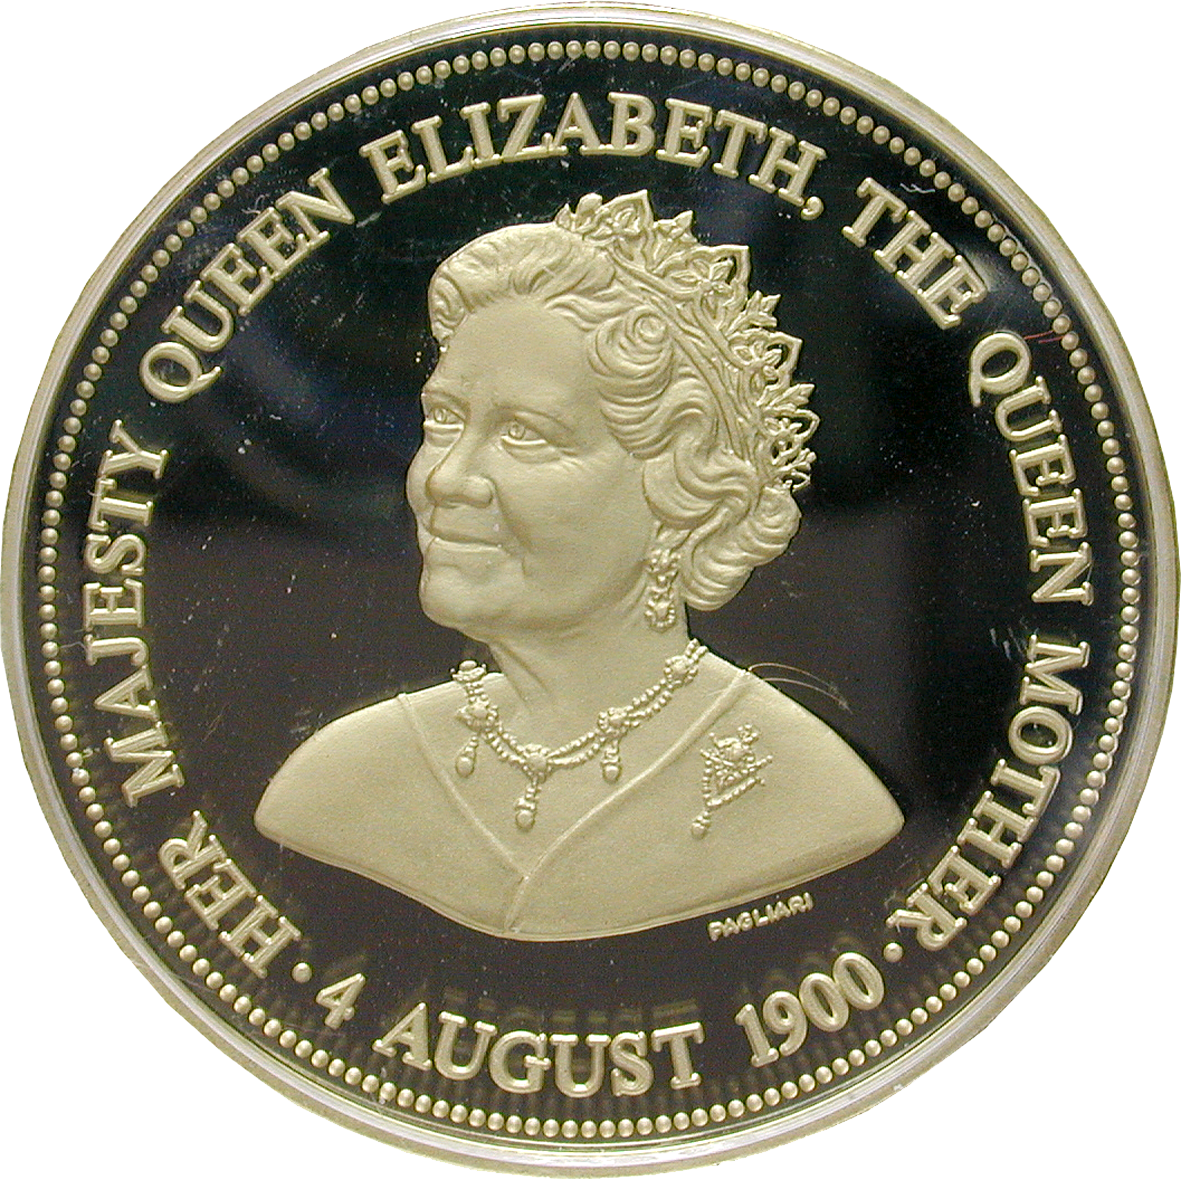 United Kingdom of Great Britain, Medal 1980 (obverse)